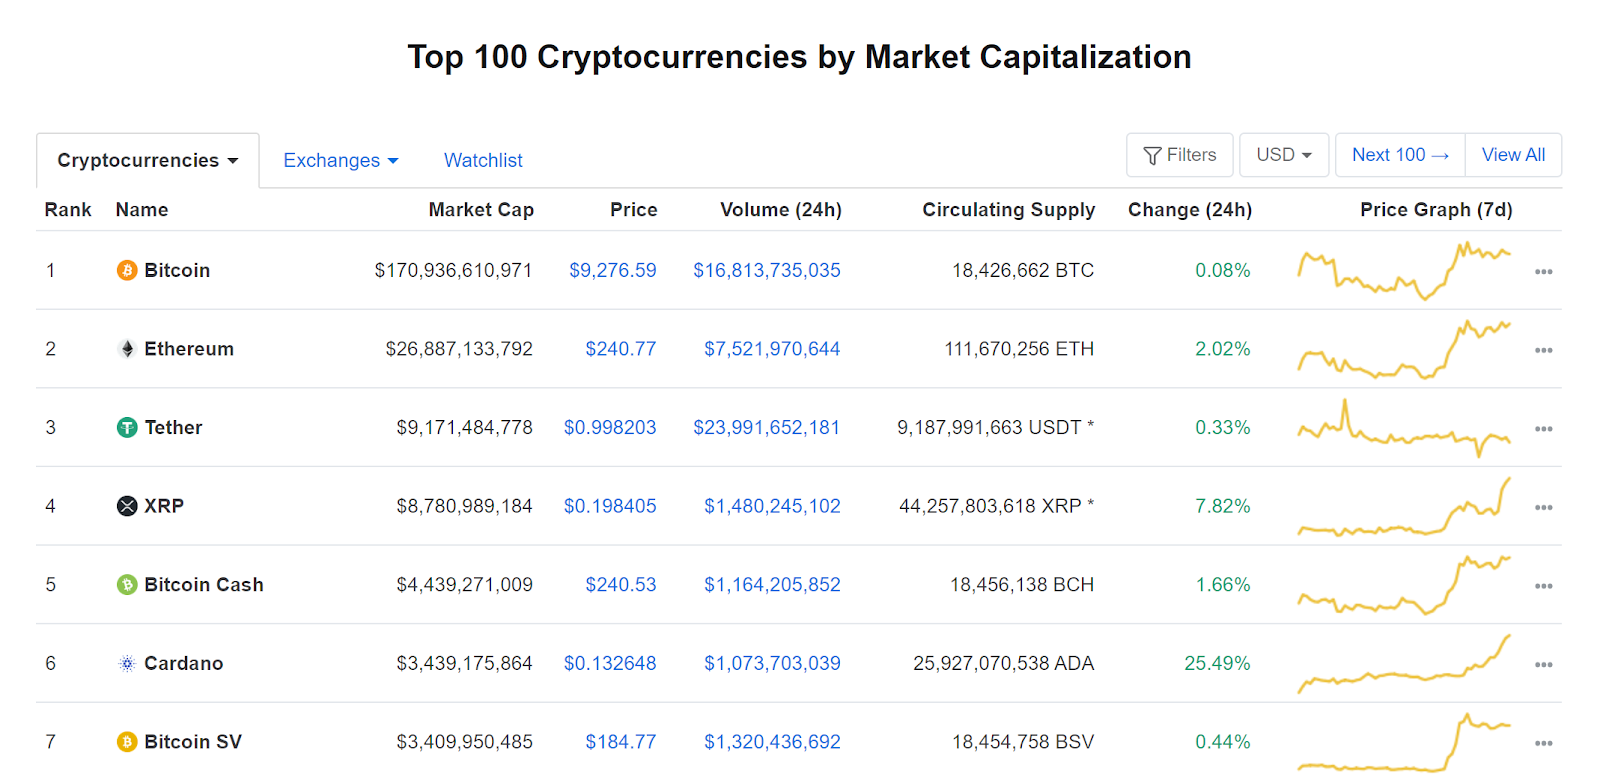 Cardano surpasses Bitcoin SV in market capitalization